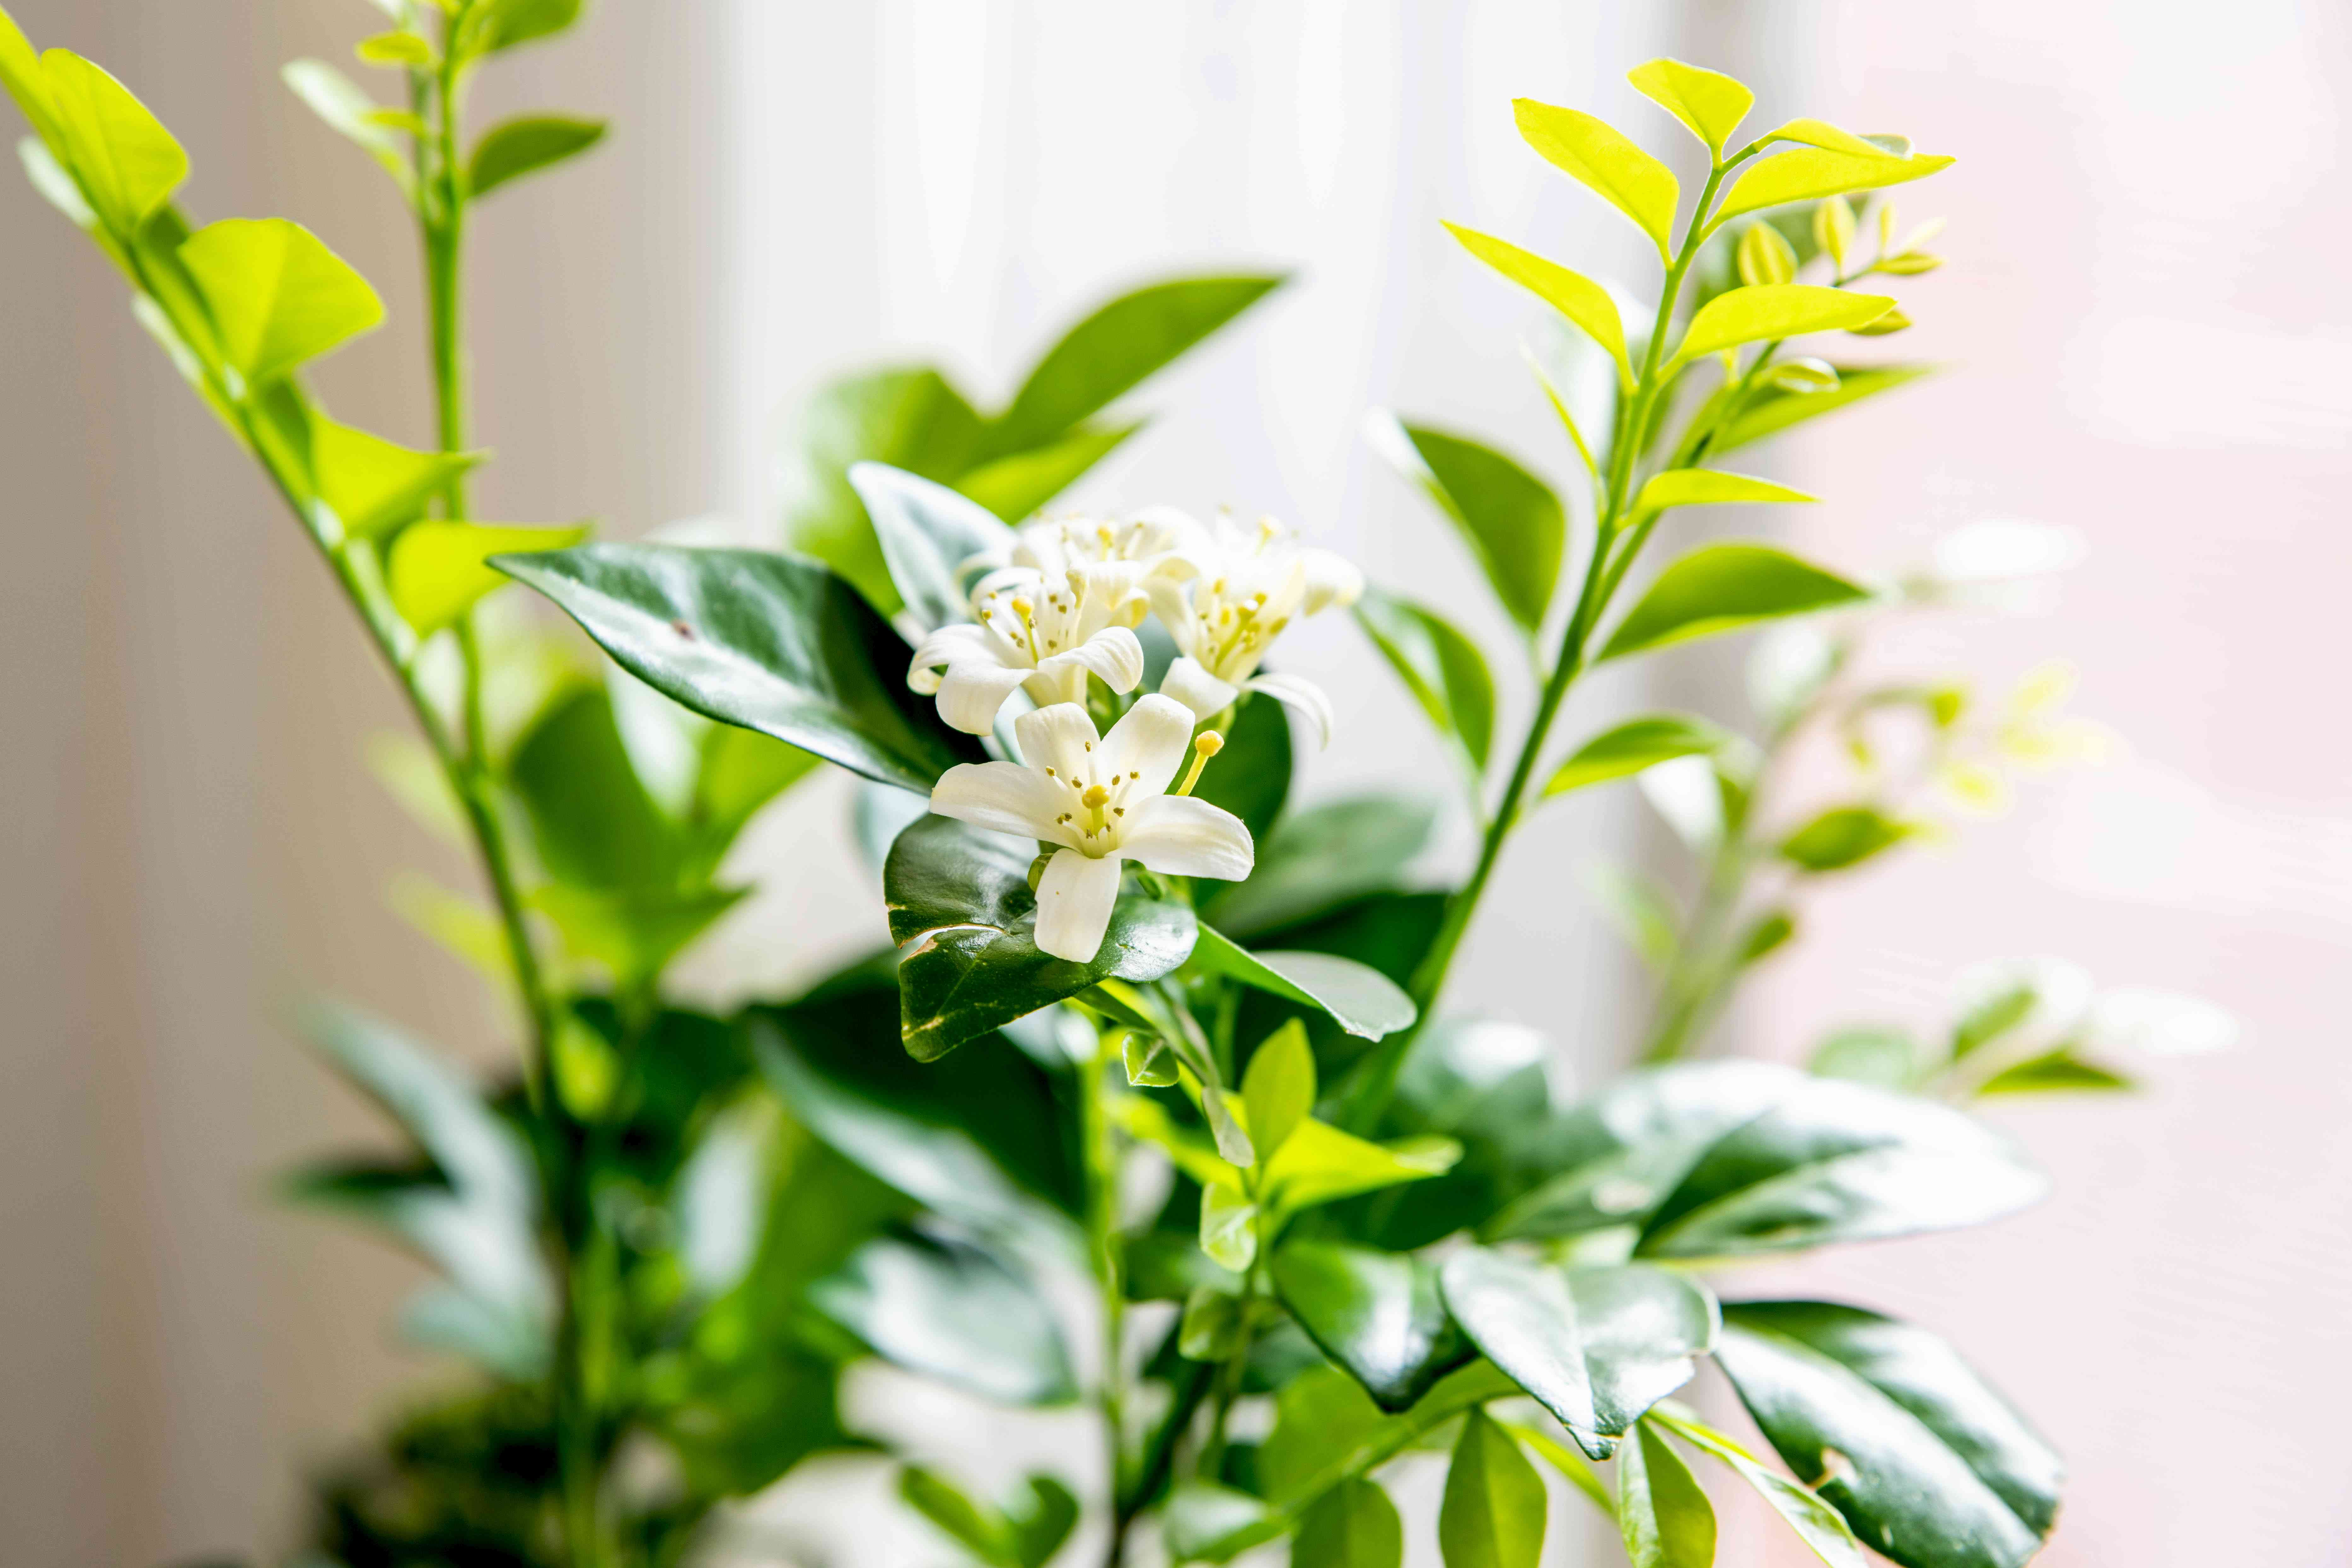 Orange jasmine plant with with small white flowers on branches with bright green and waxy leaves